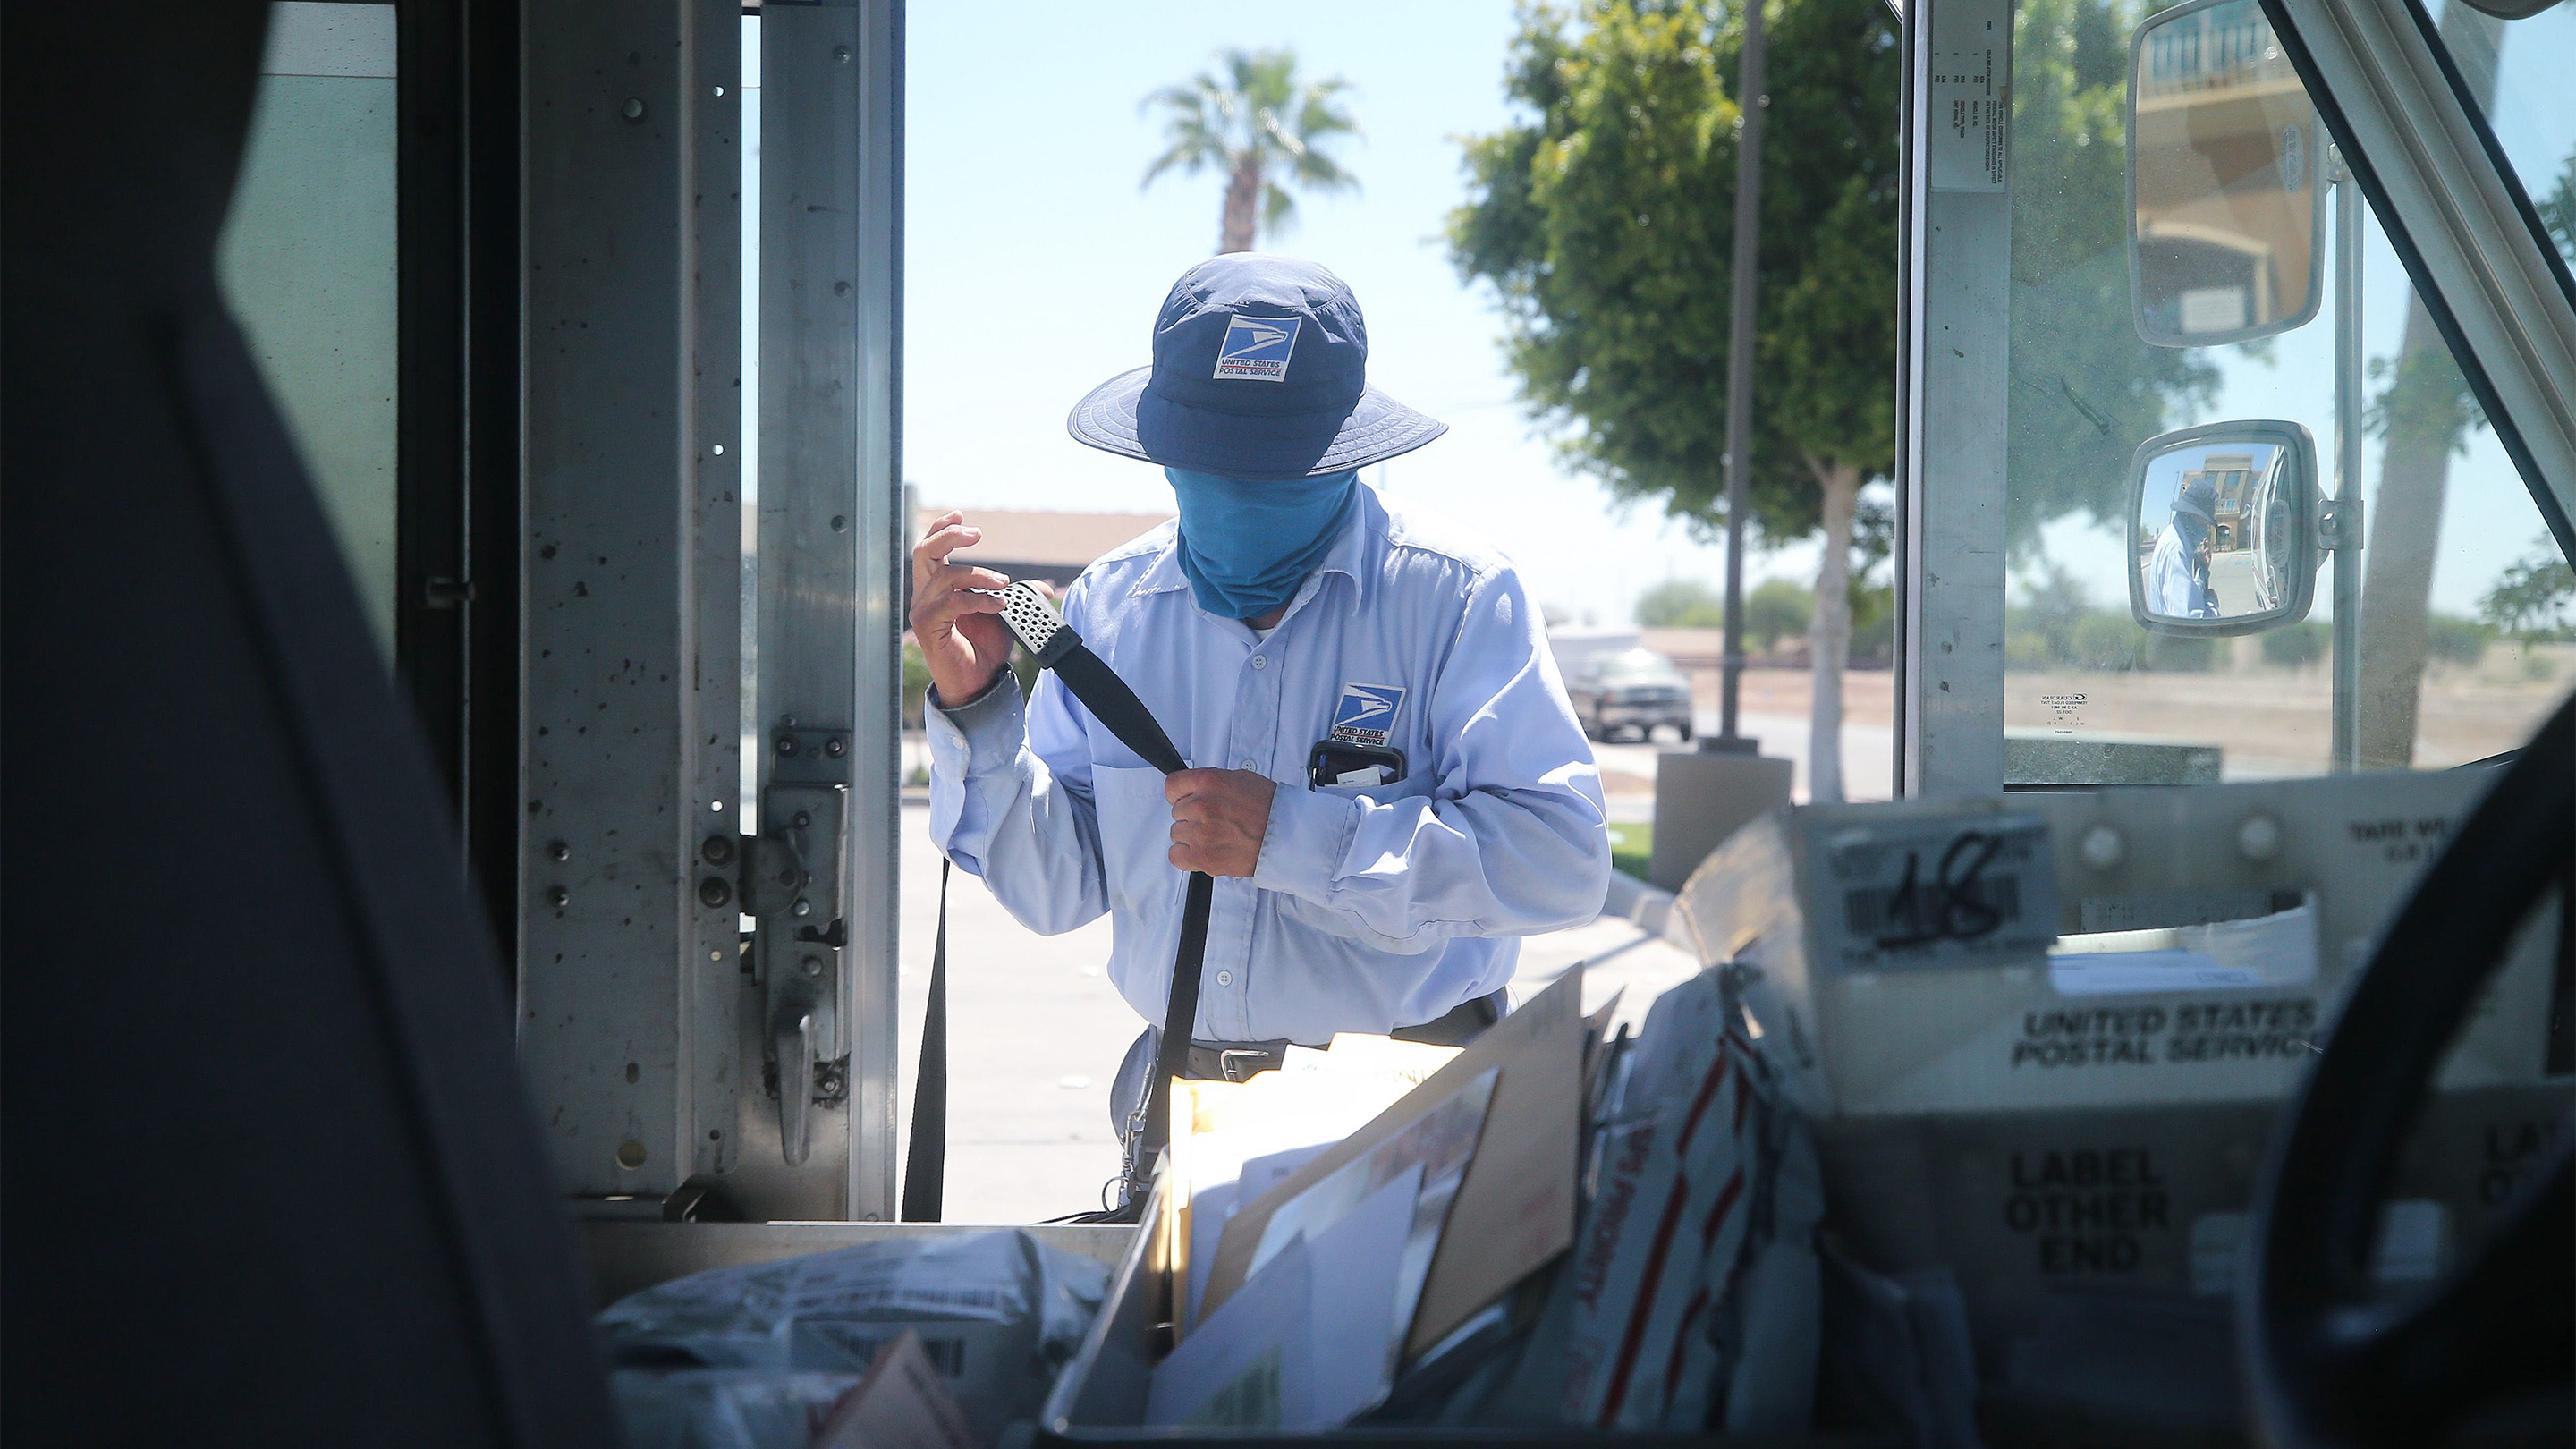 How problems at USPS could affect its workers